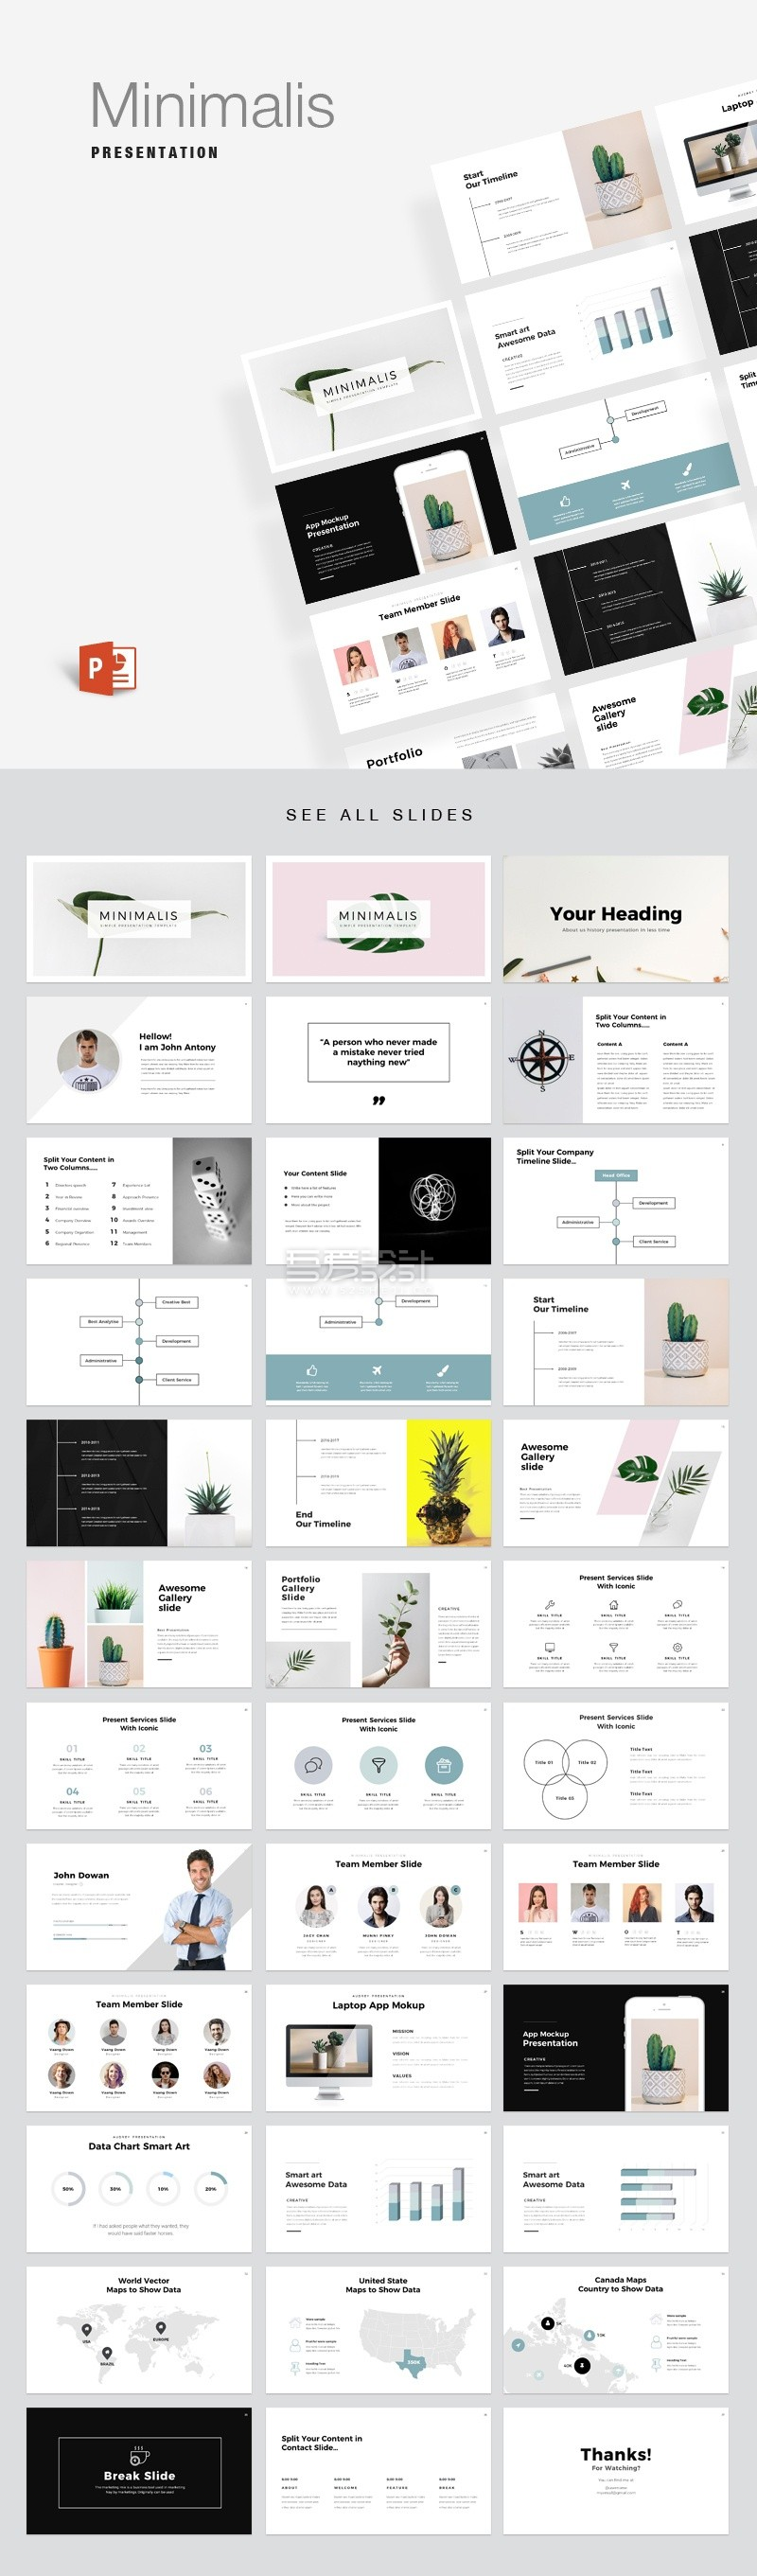 business-minimalis-powerpoint-1625-preview_a7